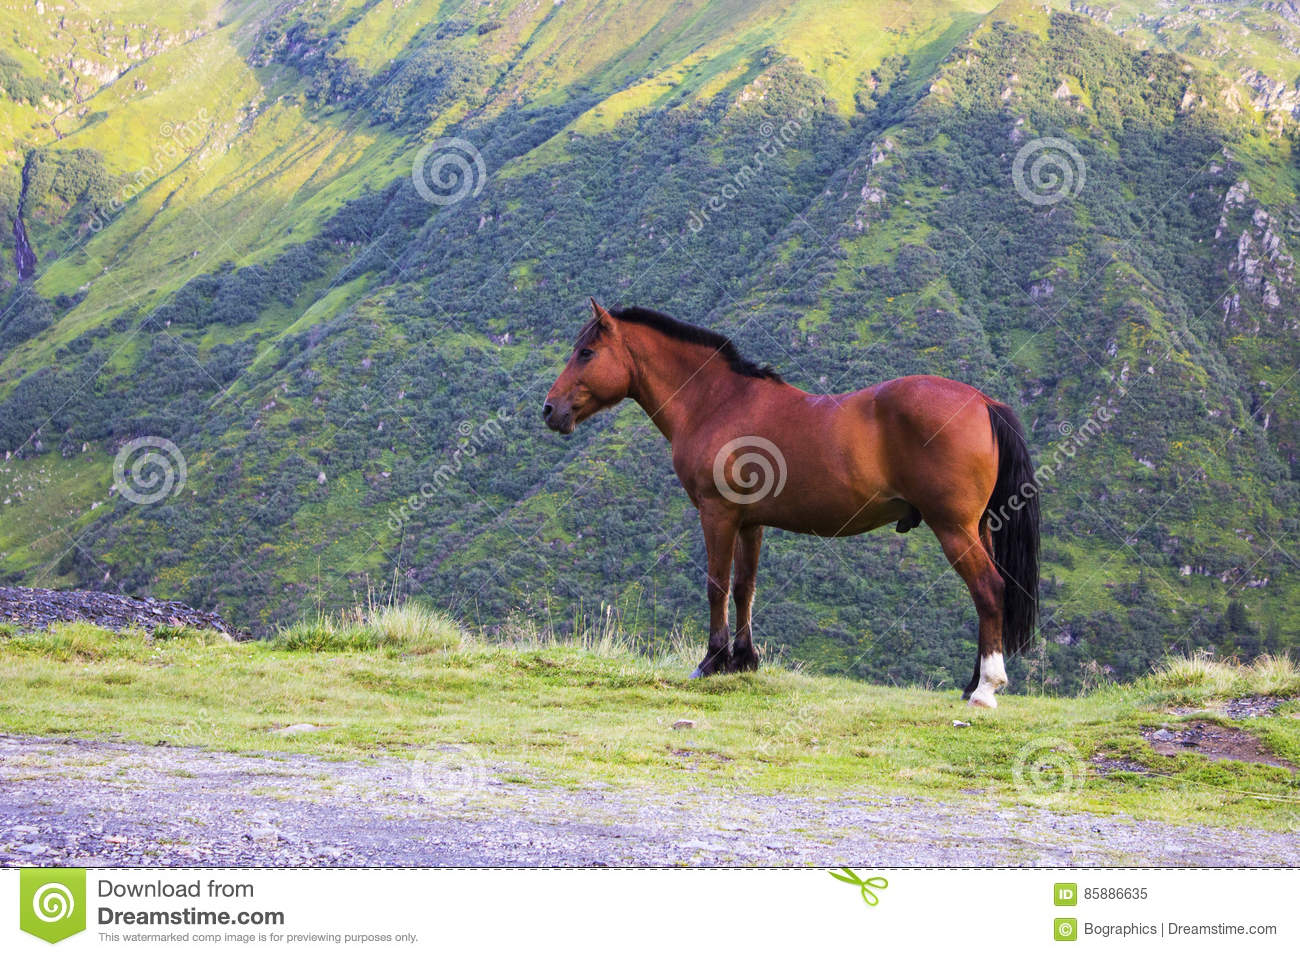 Brown horse on a mountain side view